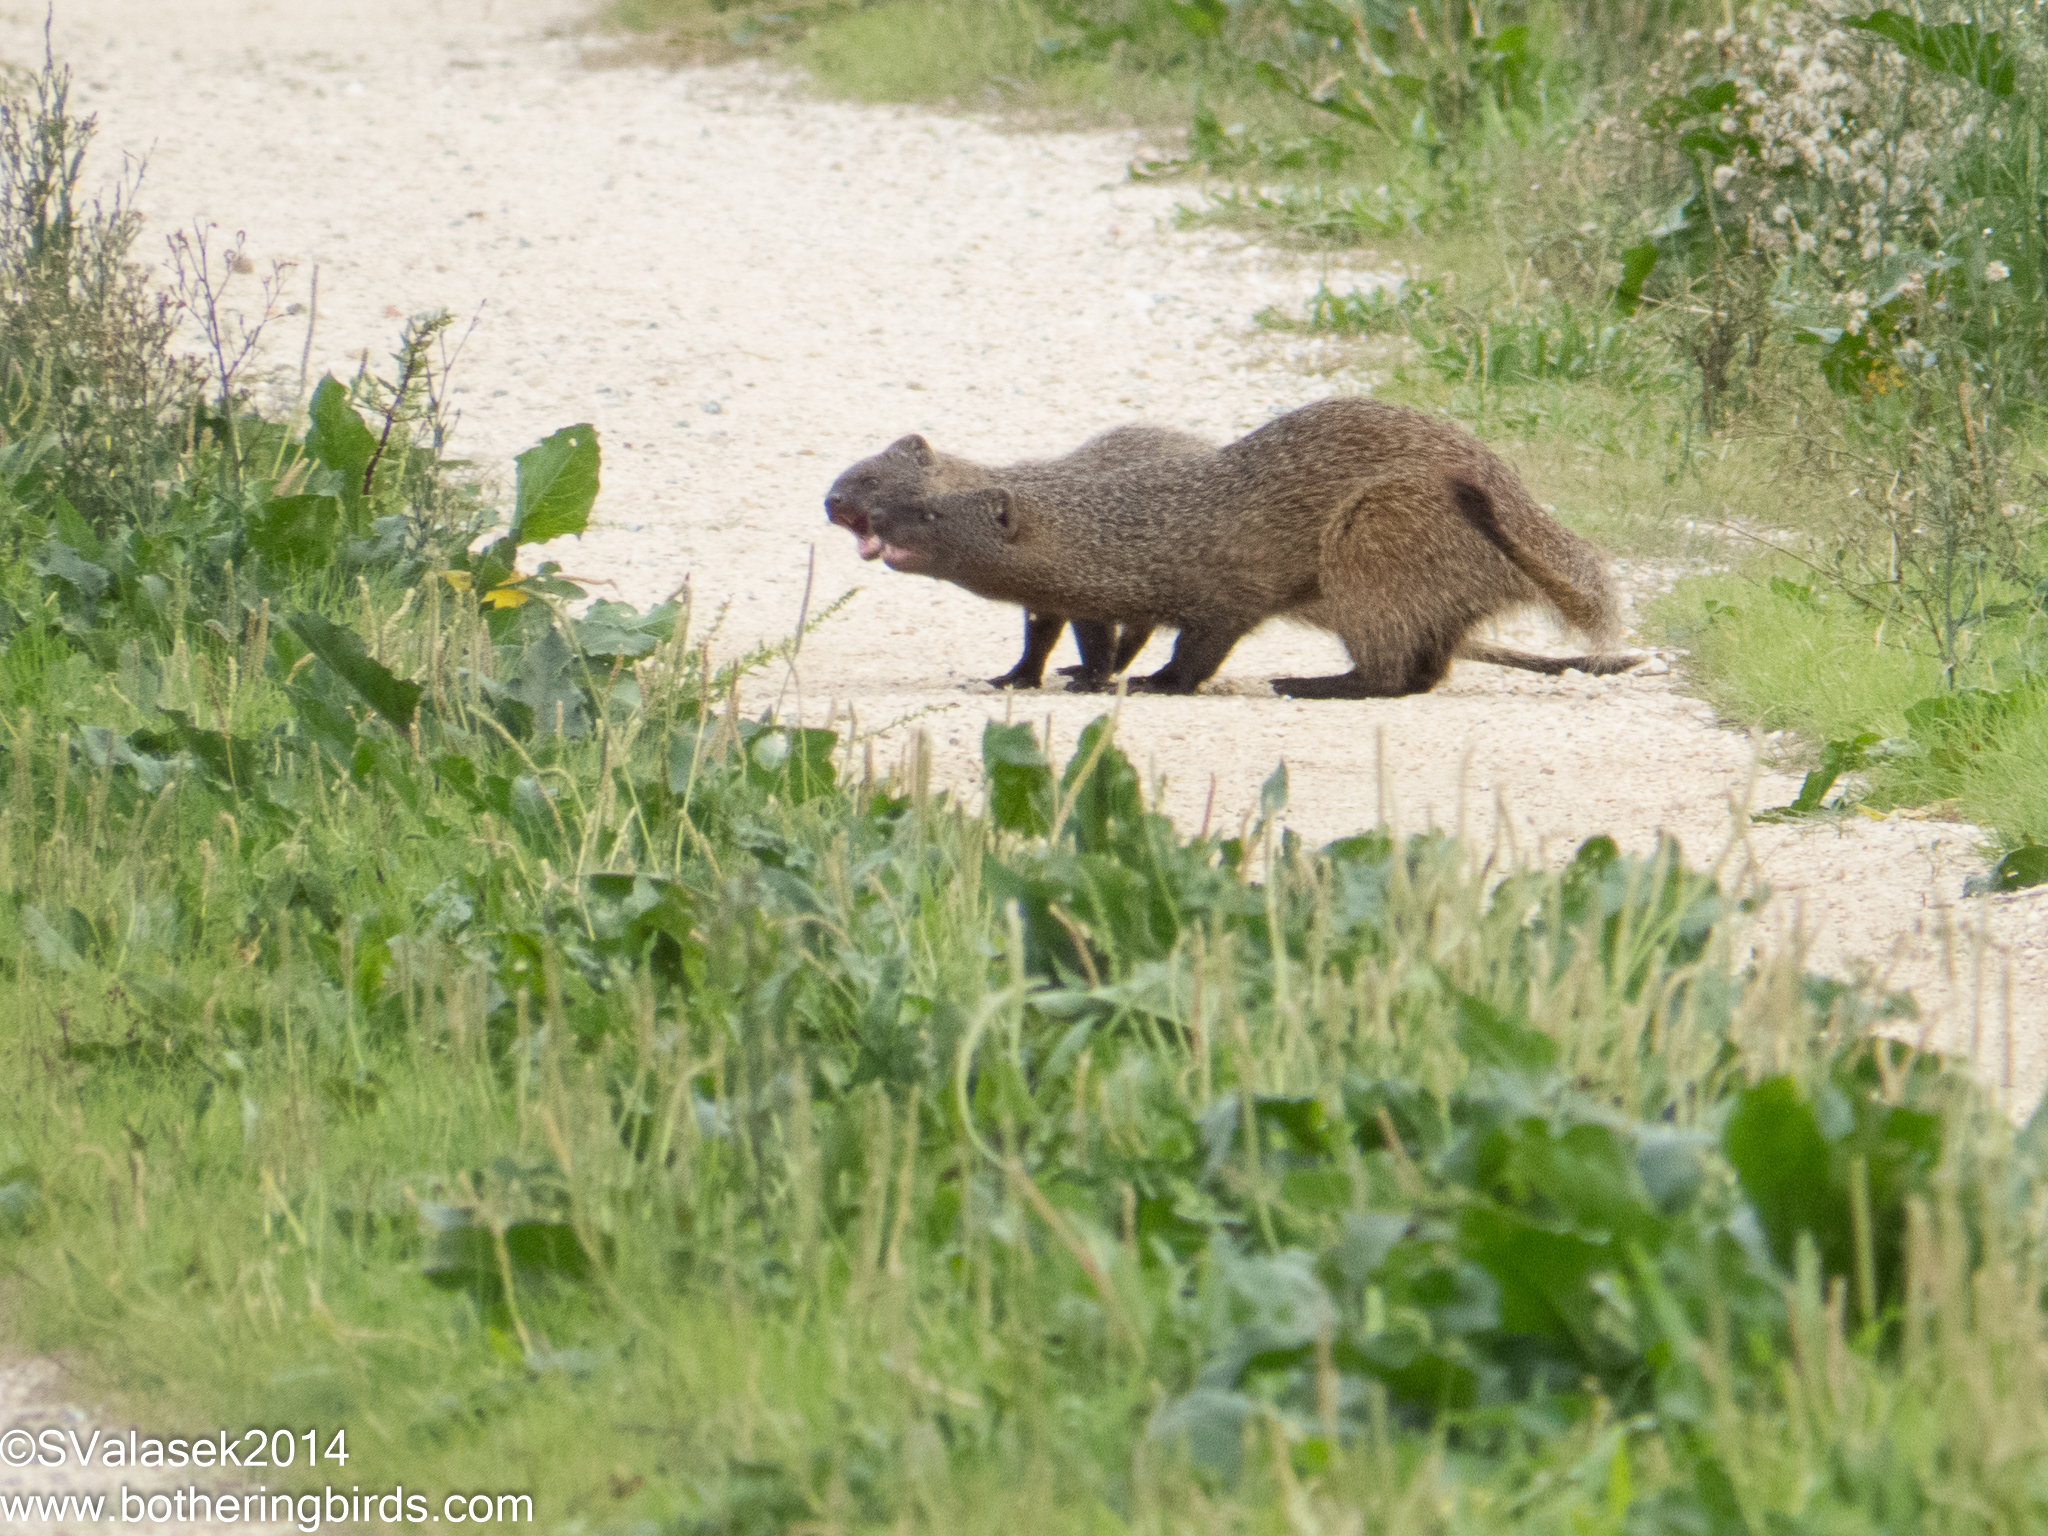 Egyptian Mongooses